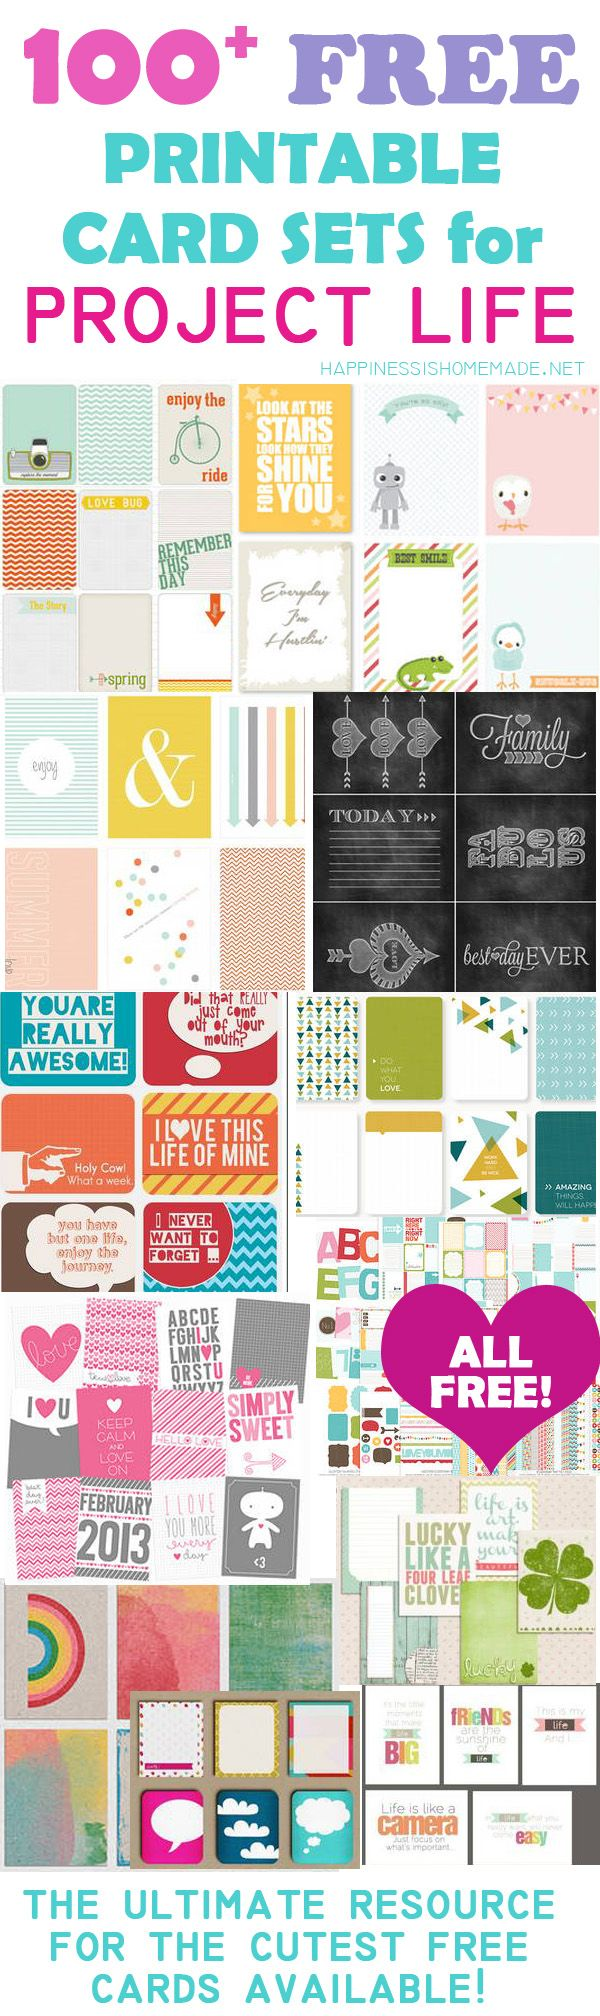 Over 100 of the best and cutest FREE printable Project Life 3x4 journal card…